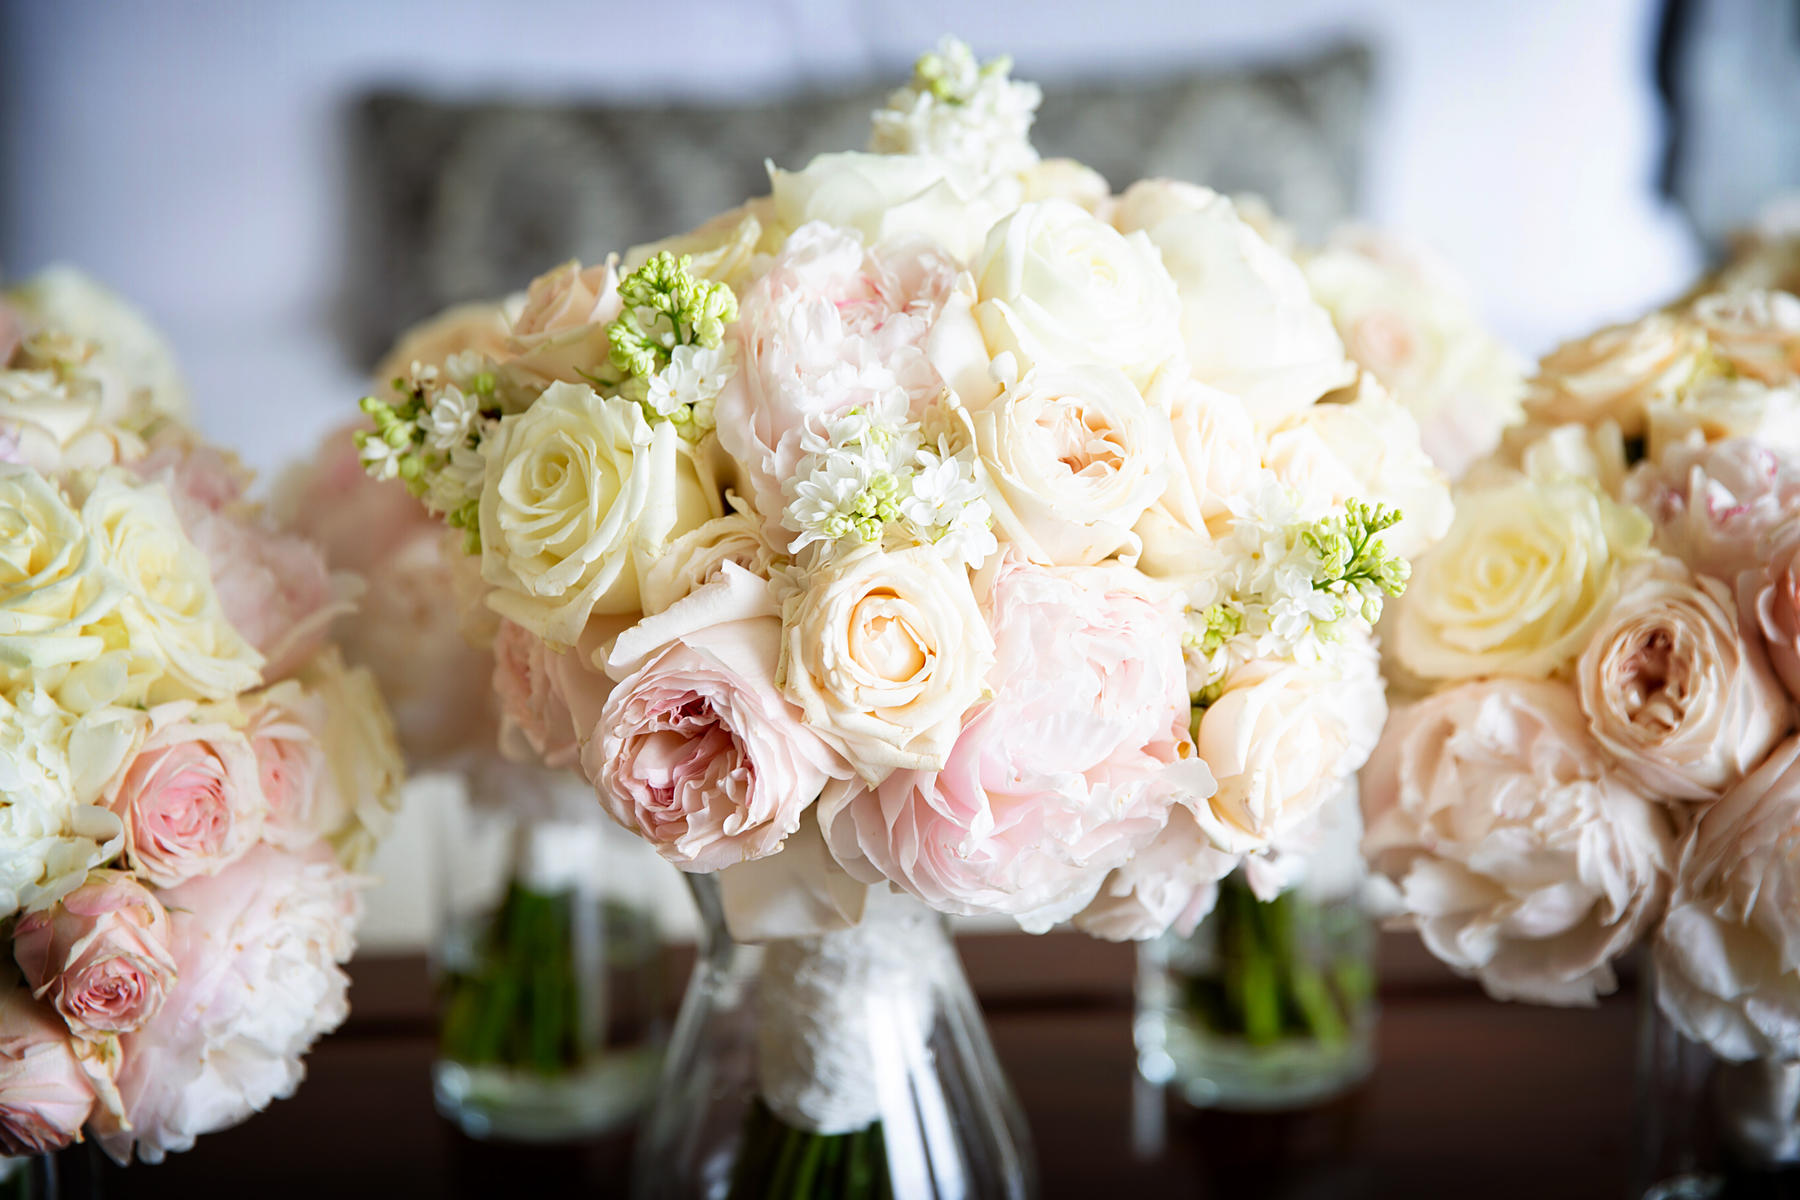 Wedding bouquets as centerpieces